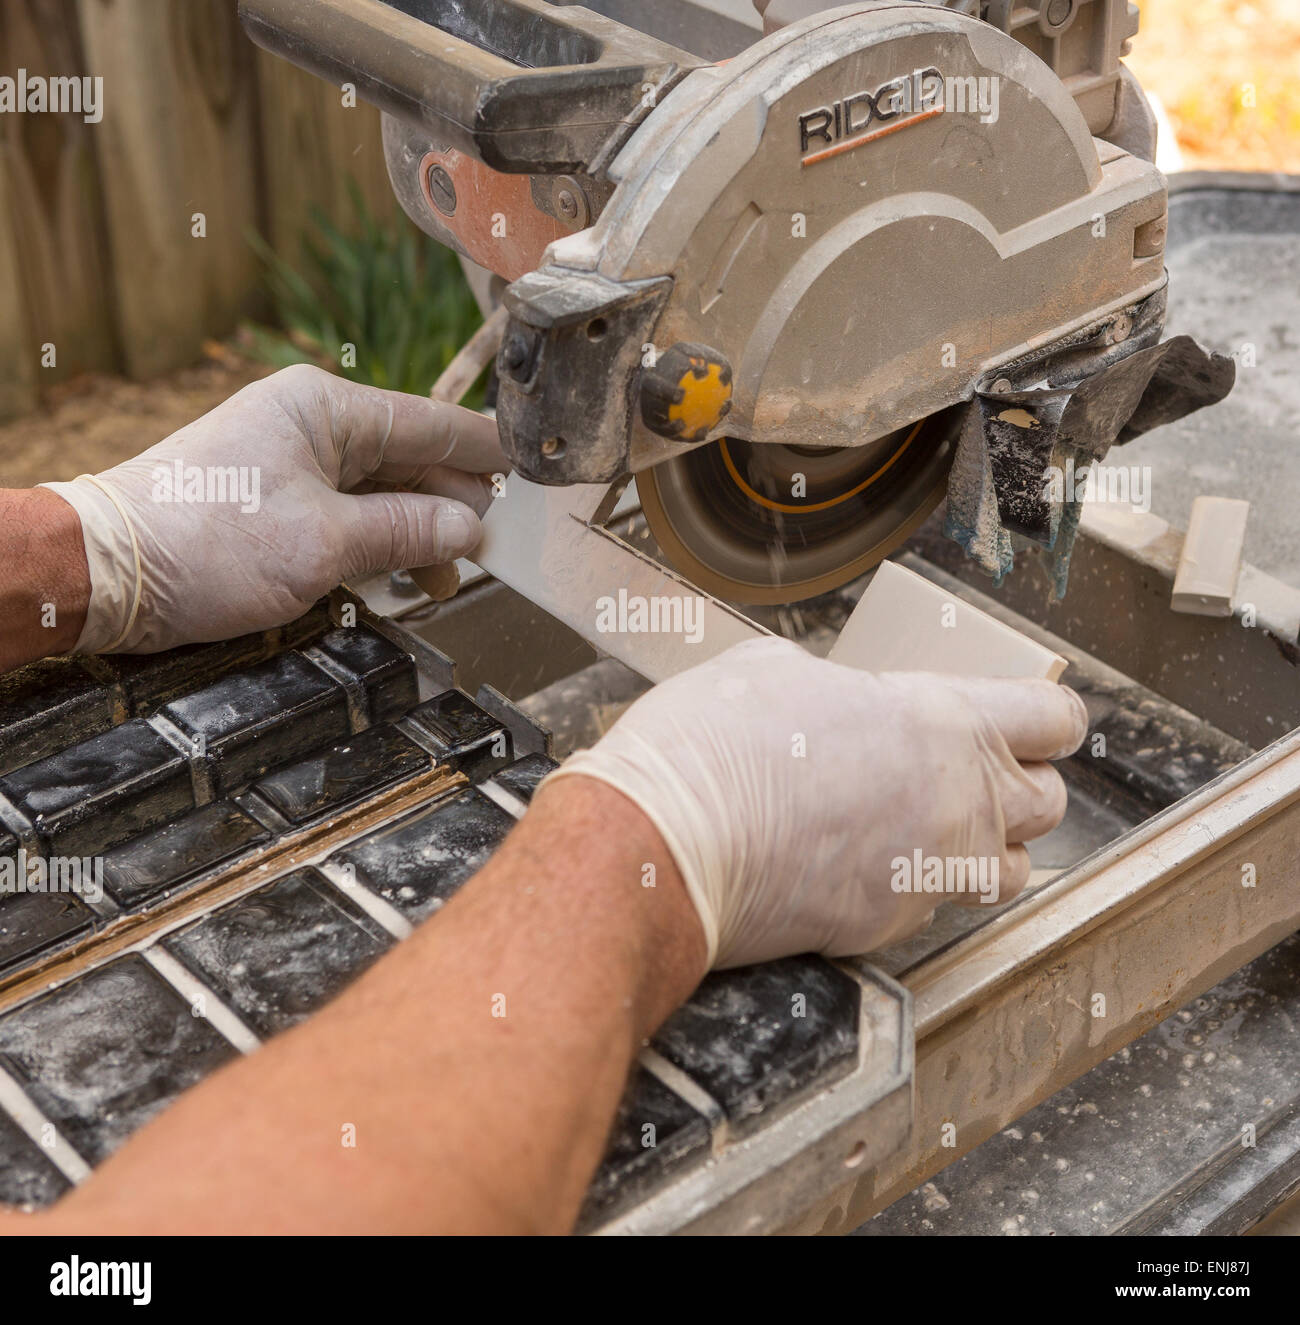 Arlington virginia usa worker wearing latex gloves cuts arlington virginia usa worker wearing latex gloves cuts ceramic tiles with a wet tile saw dailygadgetfo Gallery